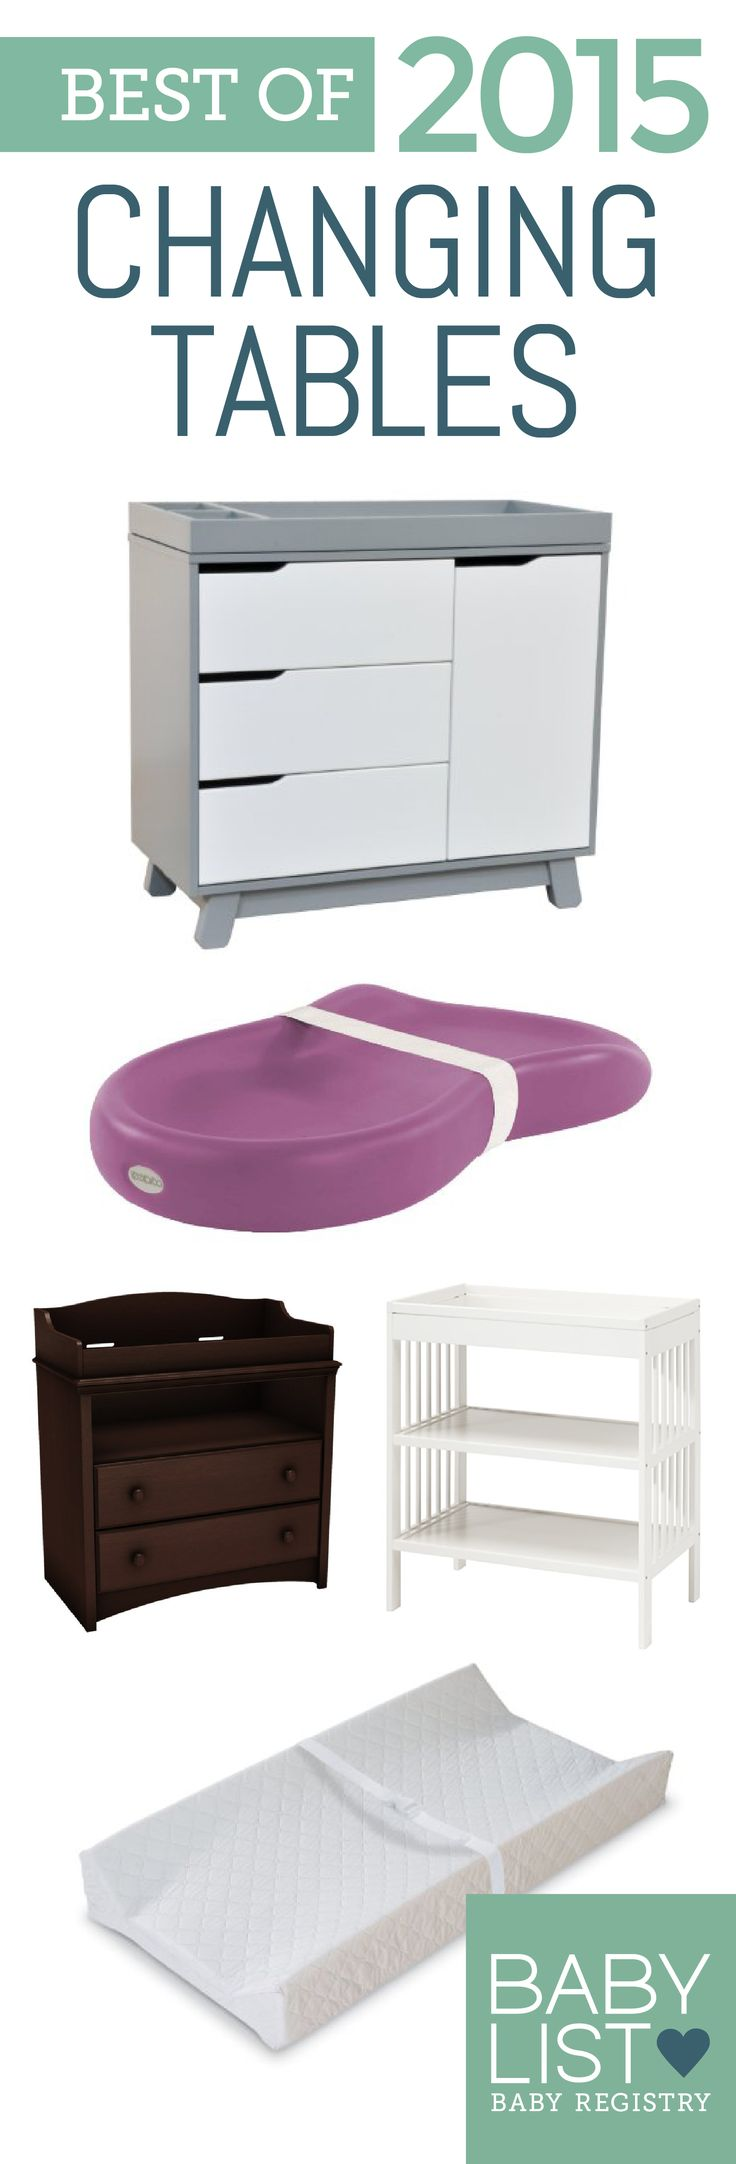 Let's be honest- no one likes dirty diapers. But with these top picks, diaper changing can actually be easy and stylish!